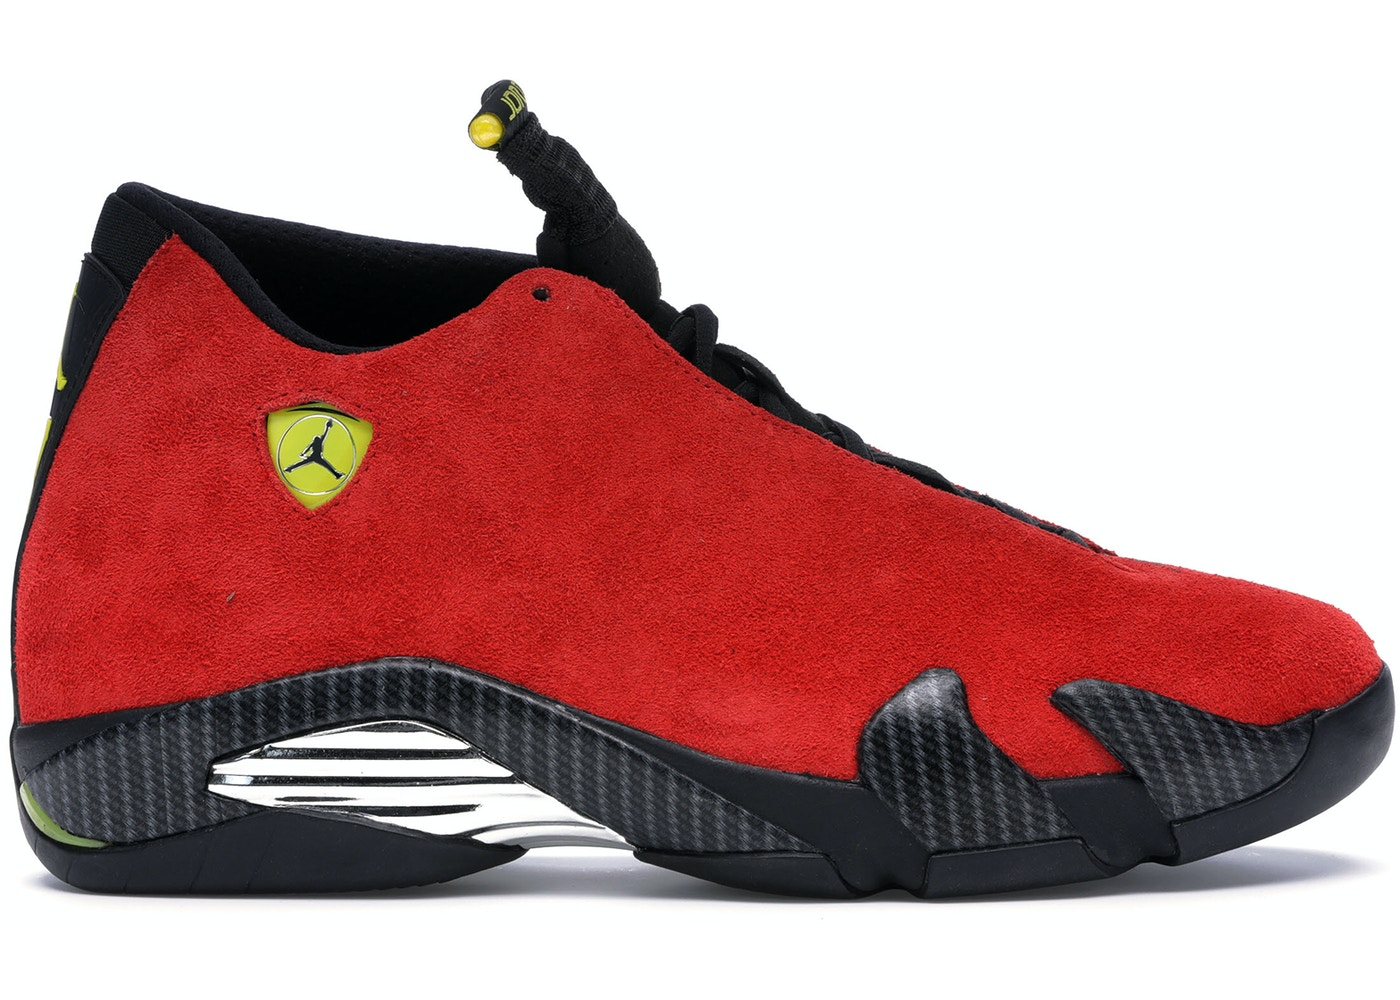 wholesale dealer 7856e 6c9df Jordan 14 Retro Ferrari - 654459-670